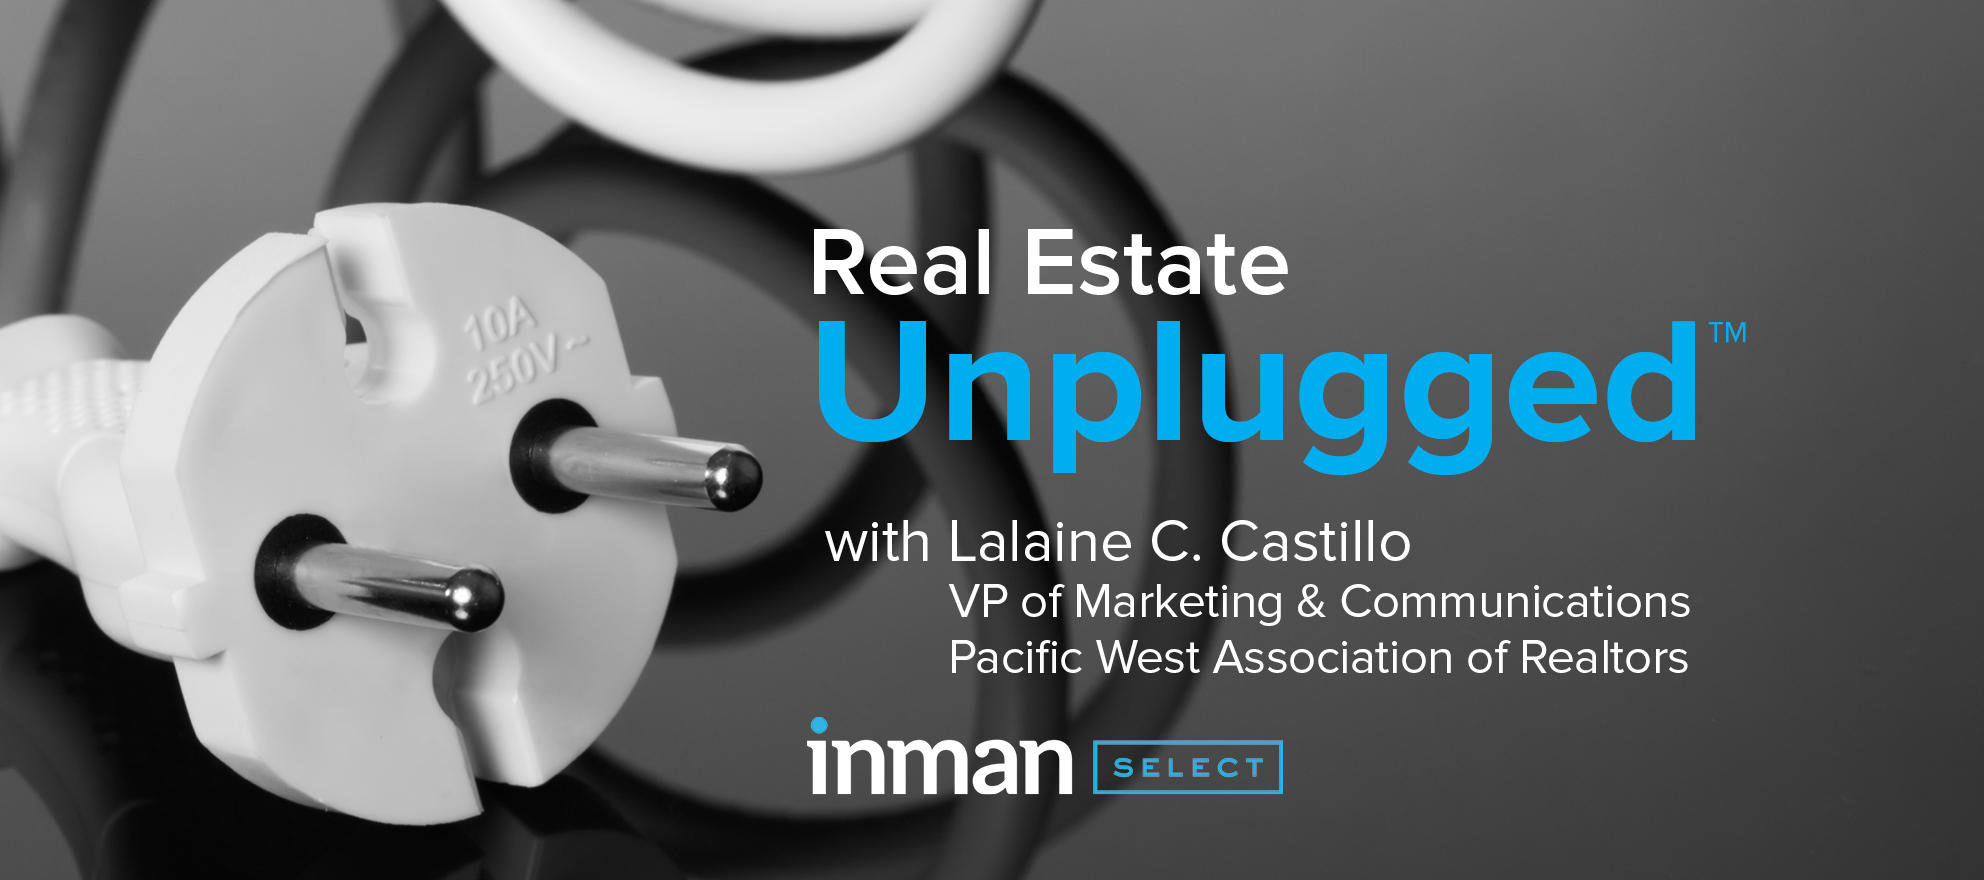 Lalaine C. Castillo on perceptions of agents and why teamwork and communication are key